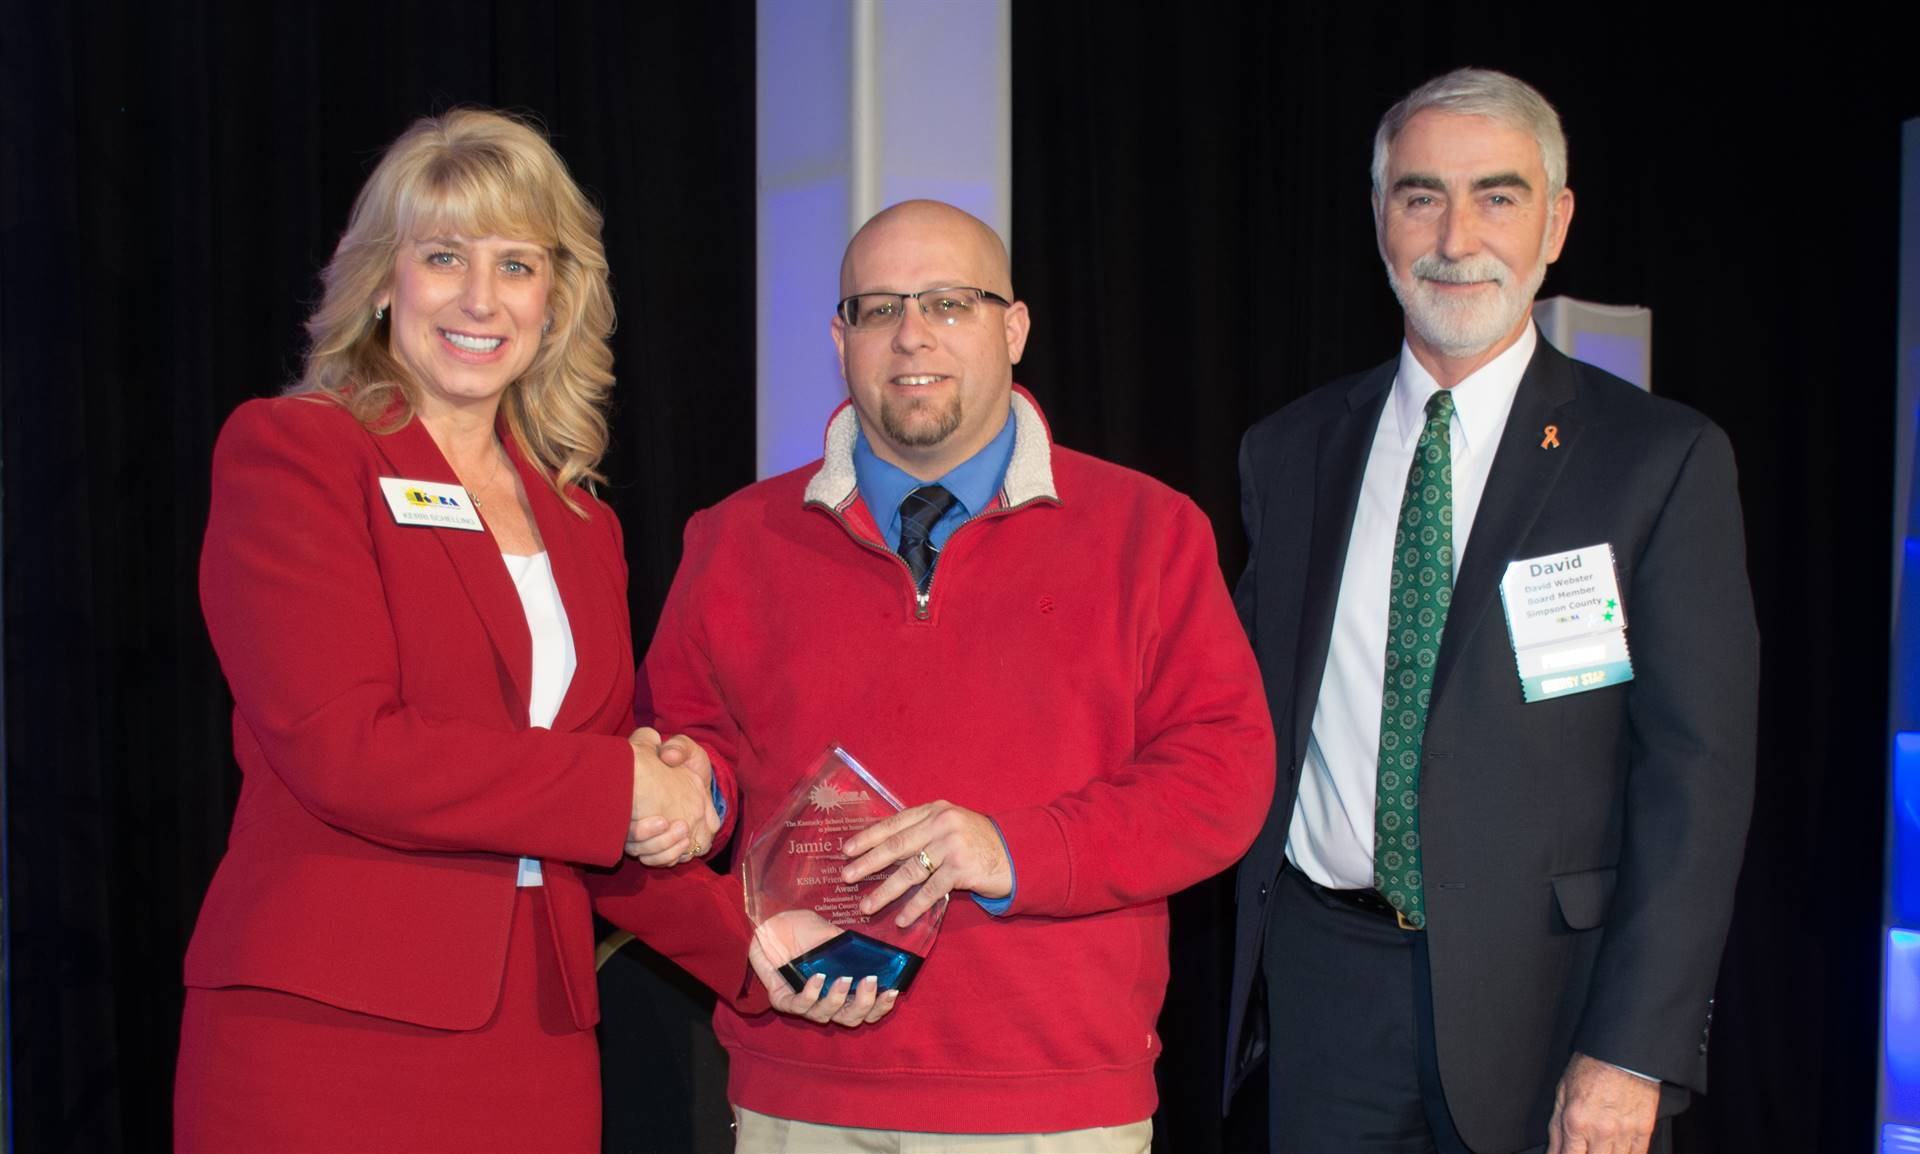 Annual Conference Friend of Education Award Winner